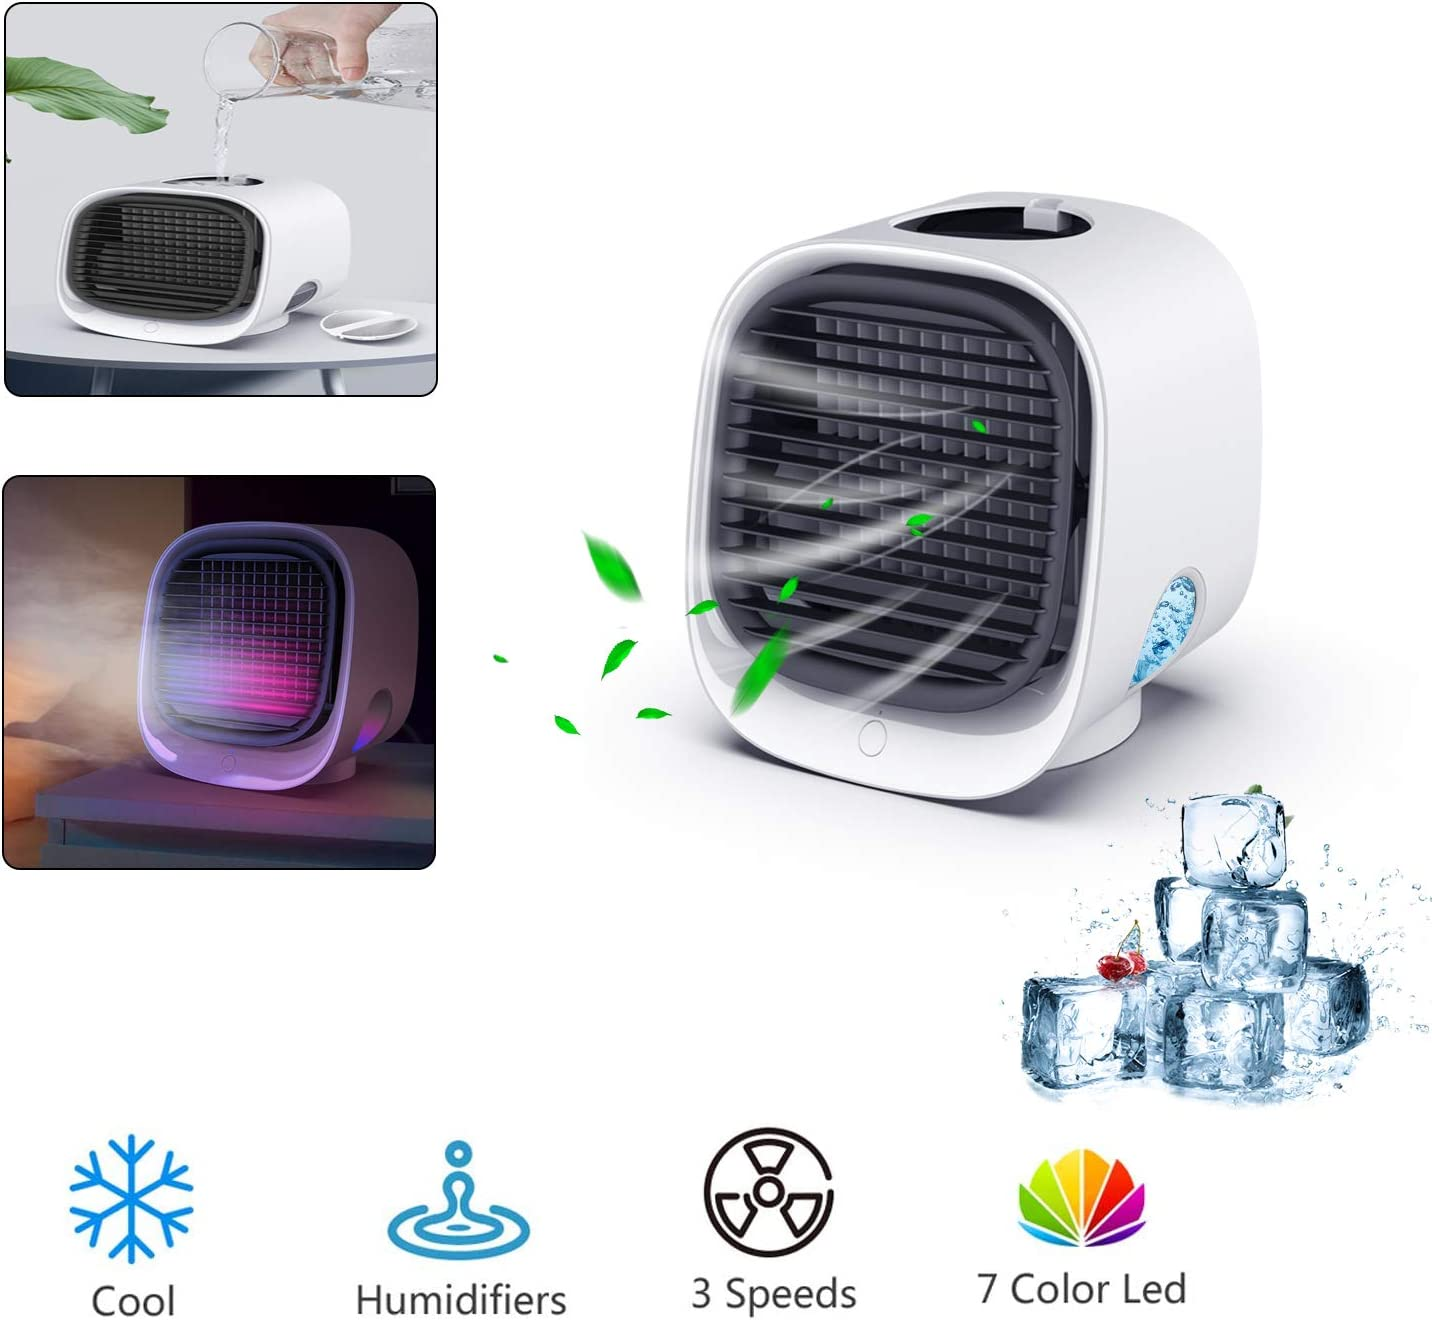 Portable Air Cooler,4 in 1 Personal Desk Cooling Fan Space Anion Air Purifier Humidifier with Icebox,3 Speeds,Colorful Night Light and handle for Home Office Bedroom,Adjustable Angles